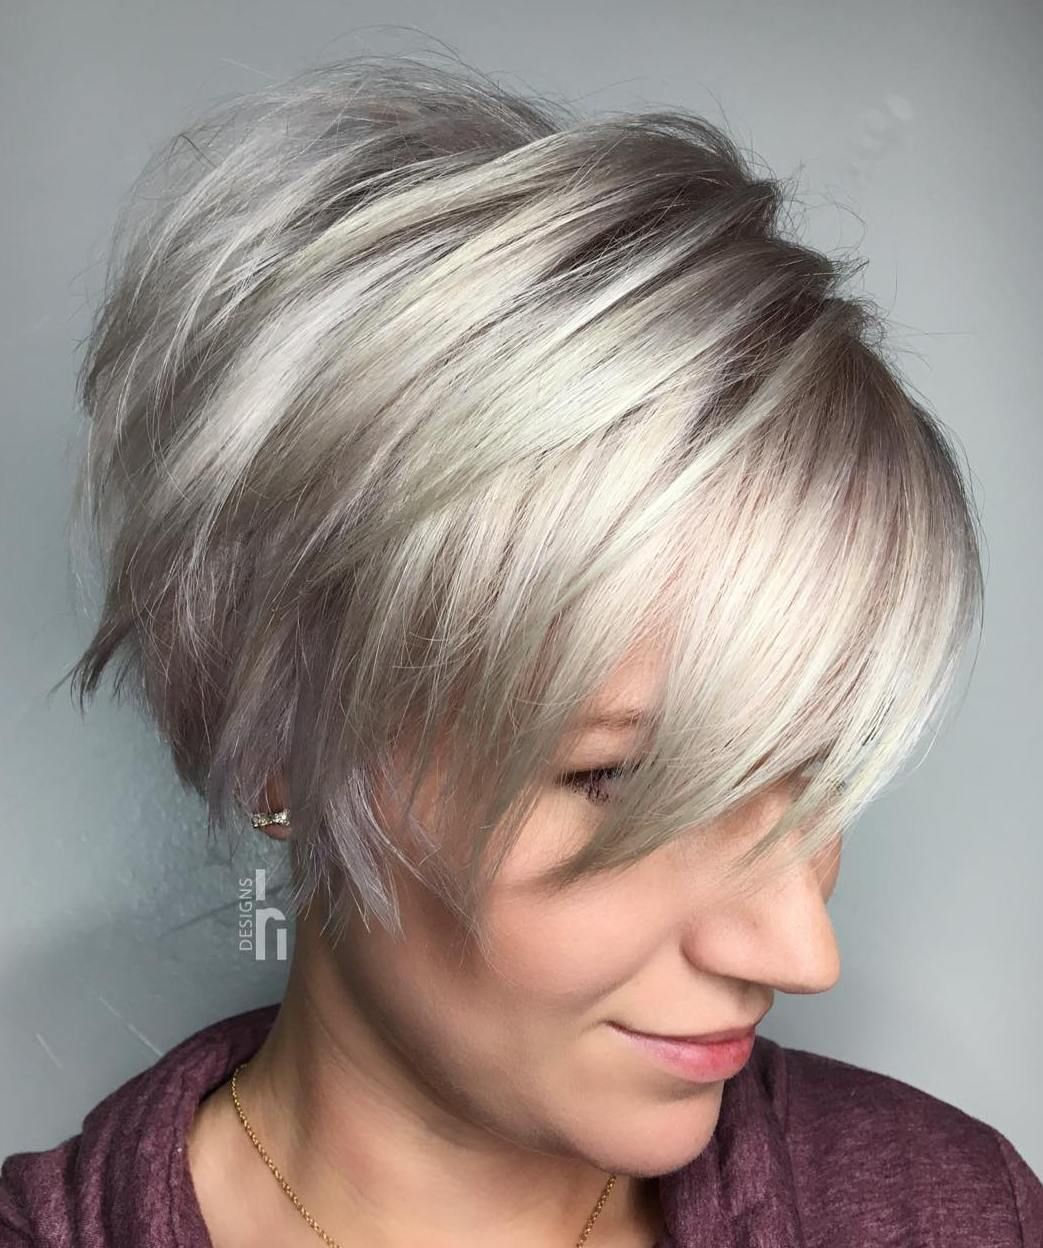 cute and easytostyle short layered hairstyles pixies and bobs